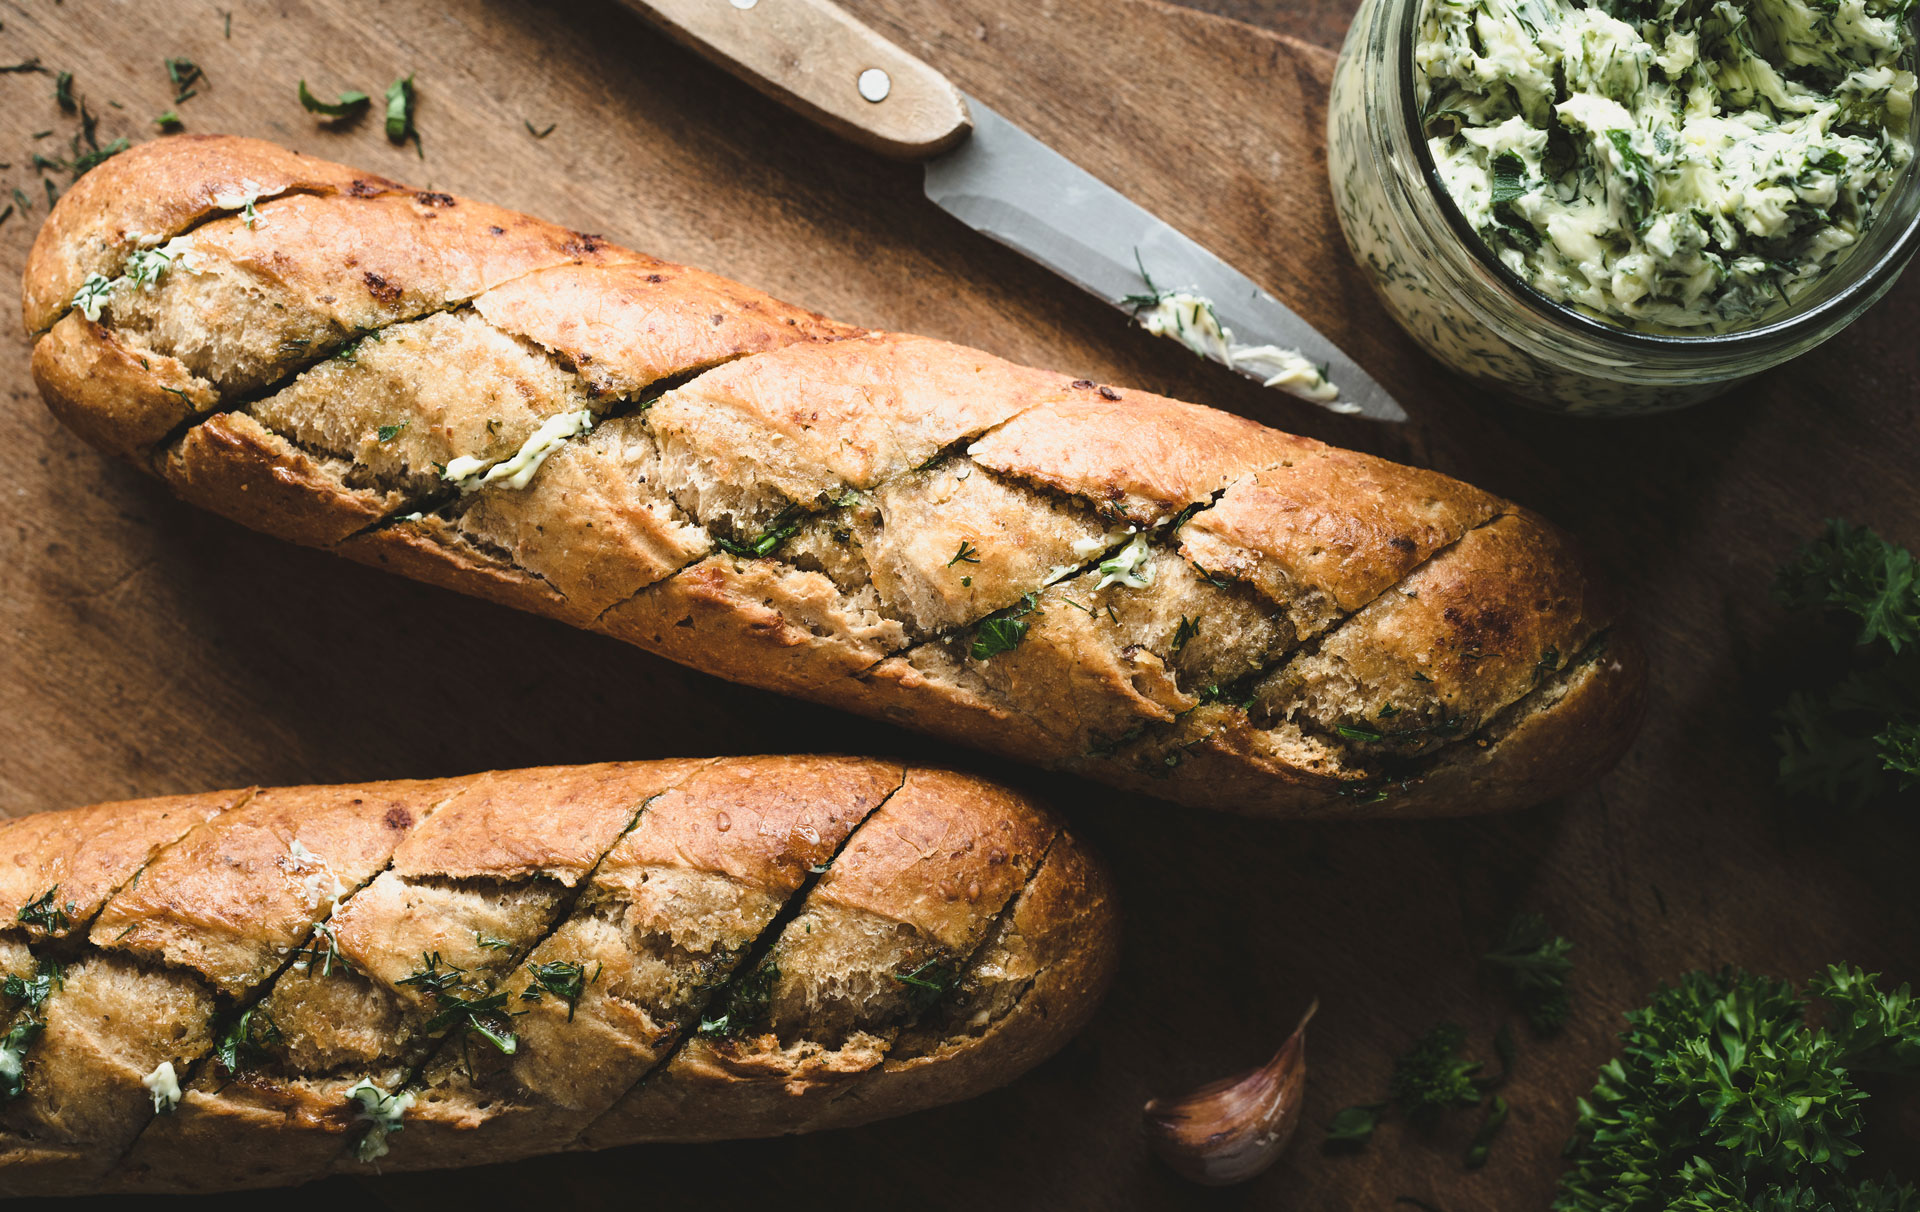 This garlic bread recipe is totally addictive